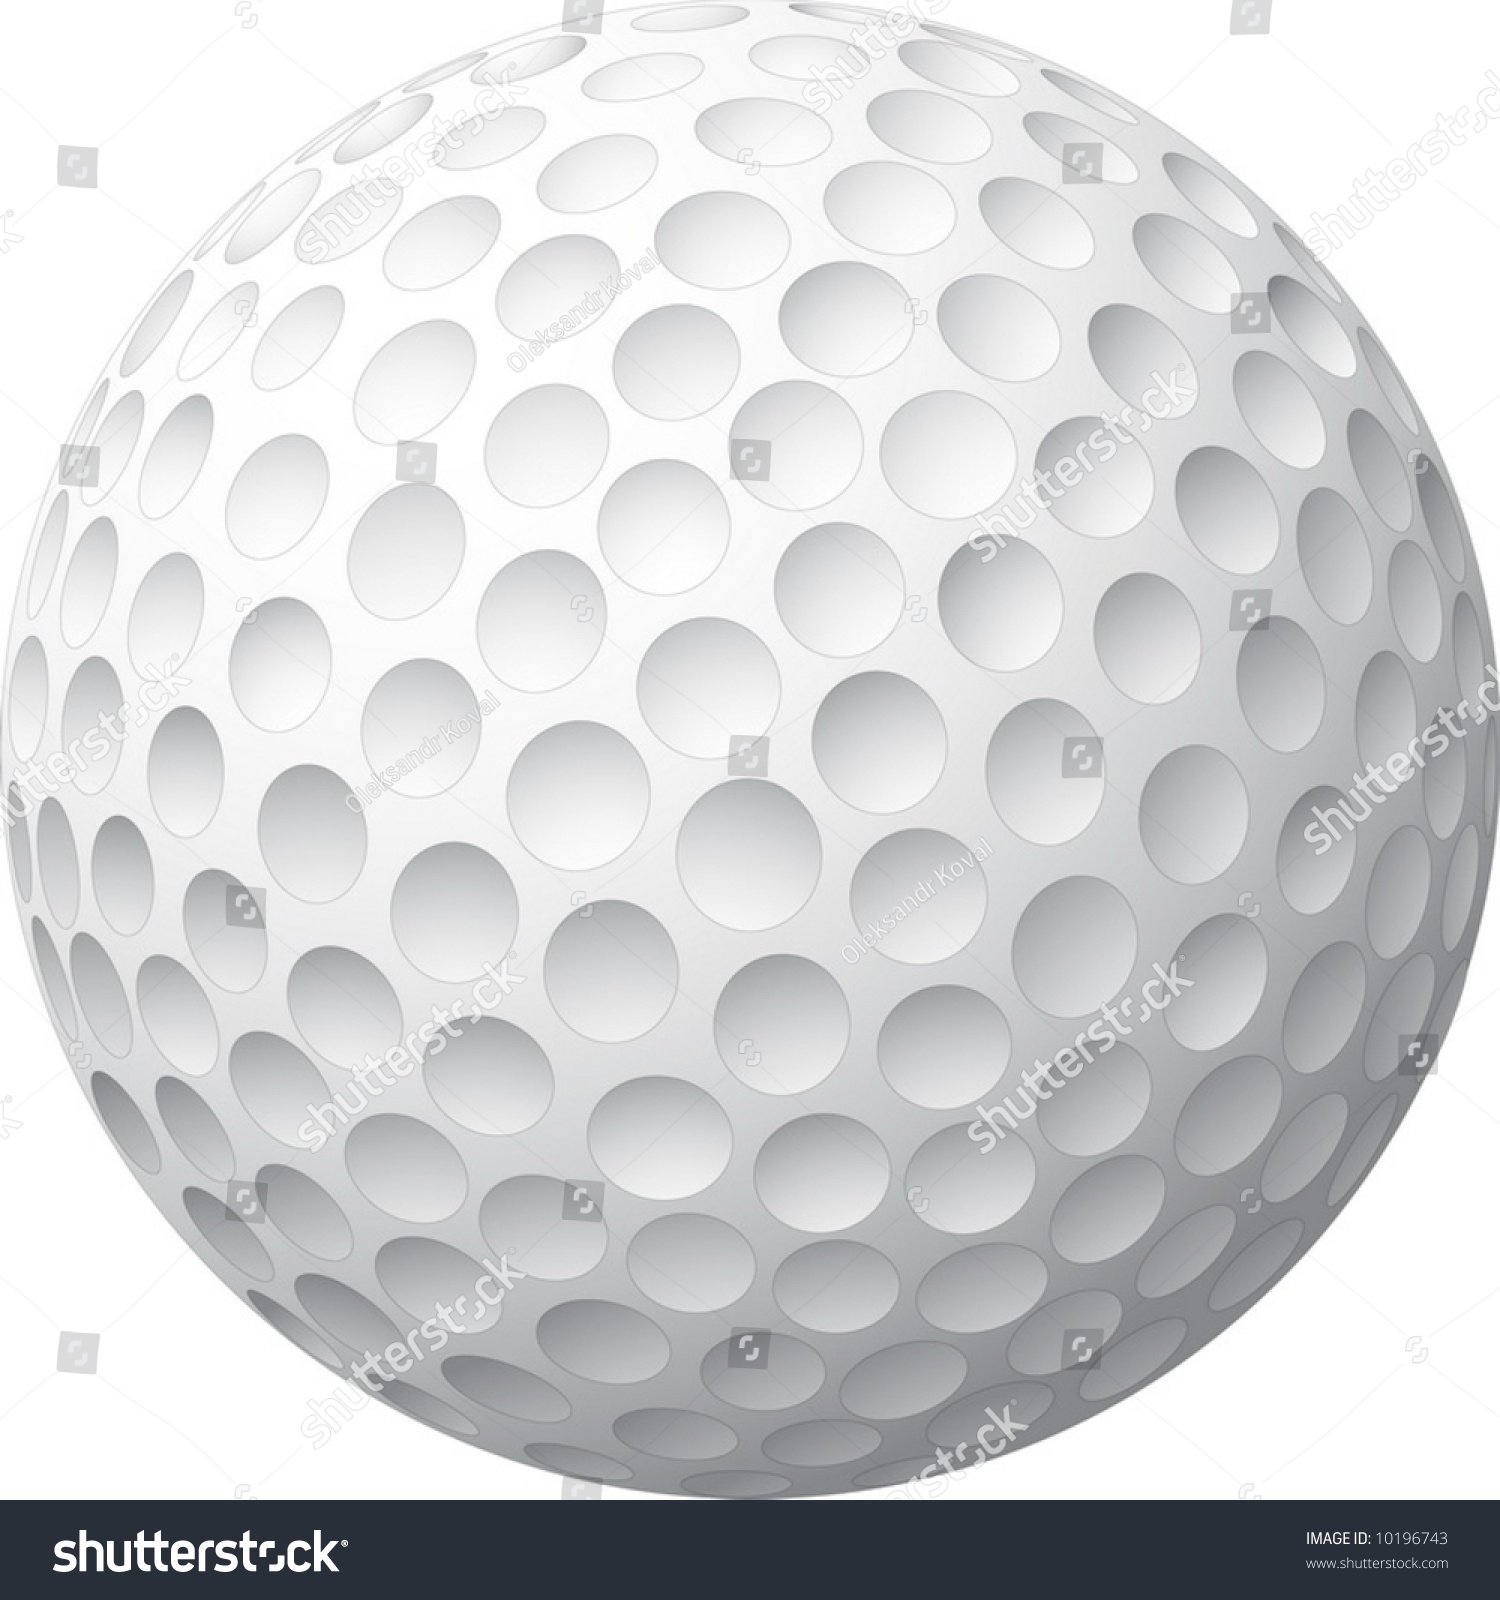 pictures of golf balls clipart - photo #50